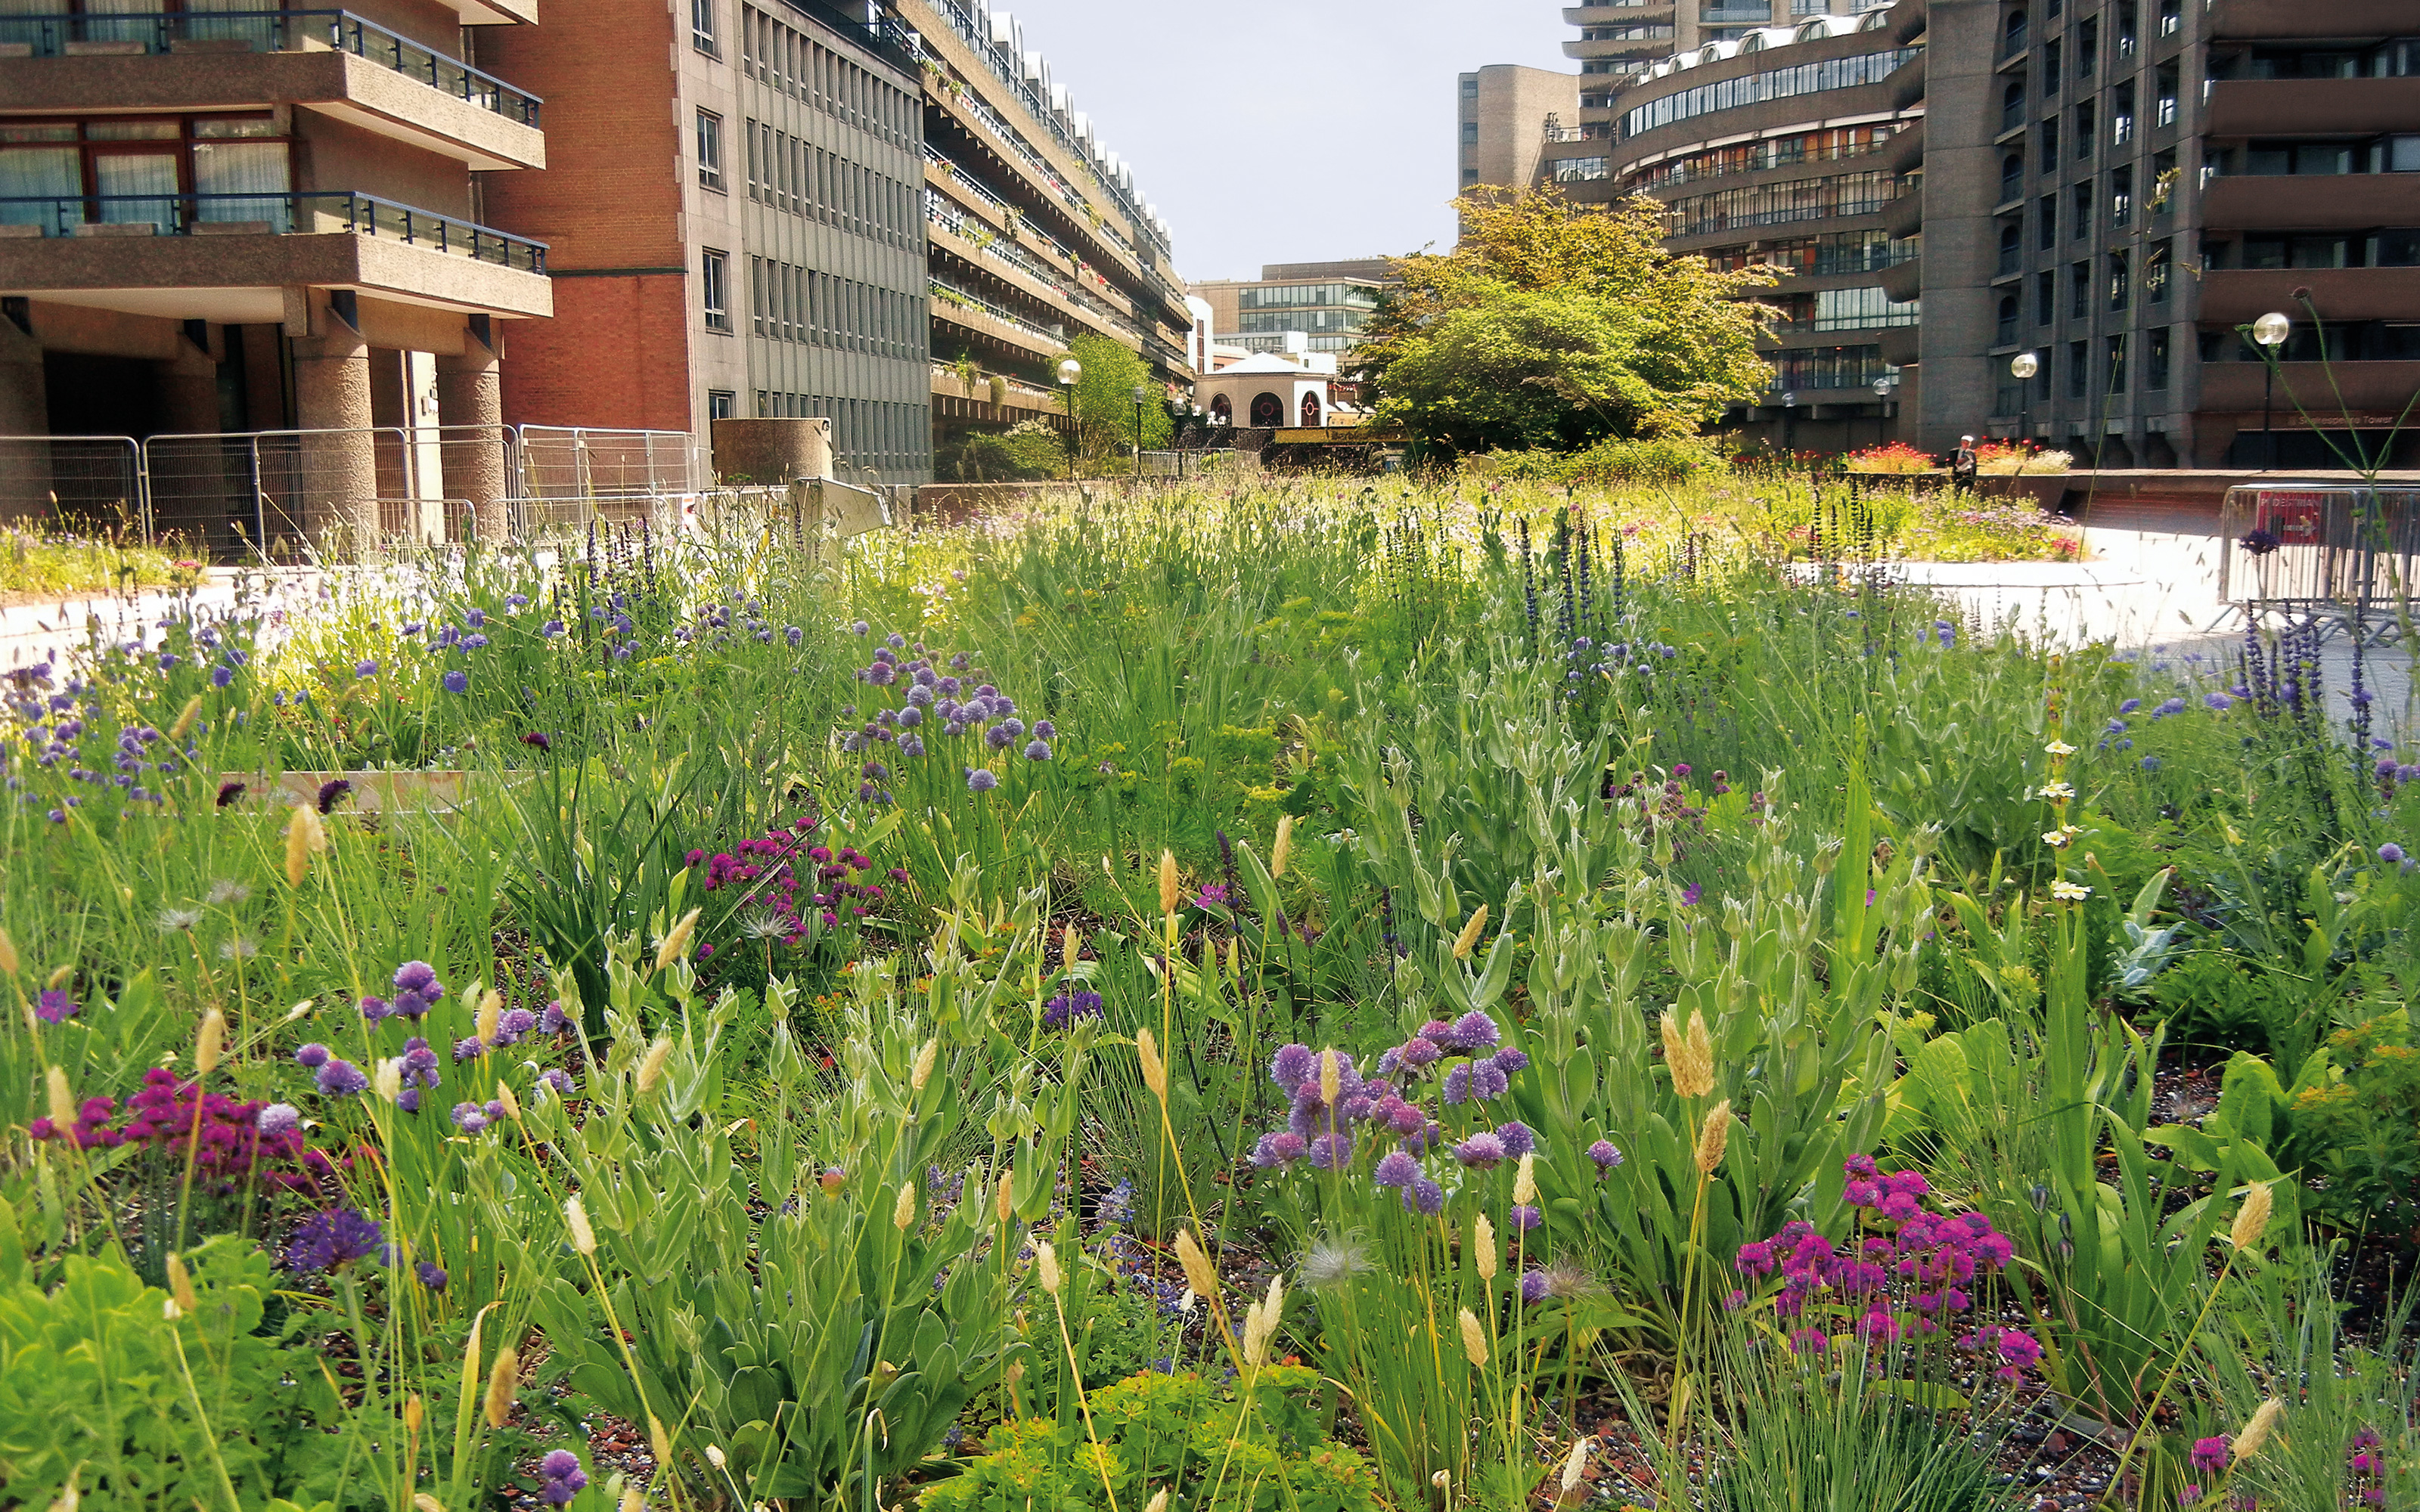 Flowering meadow surrounded by buildings